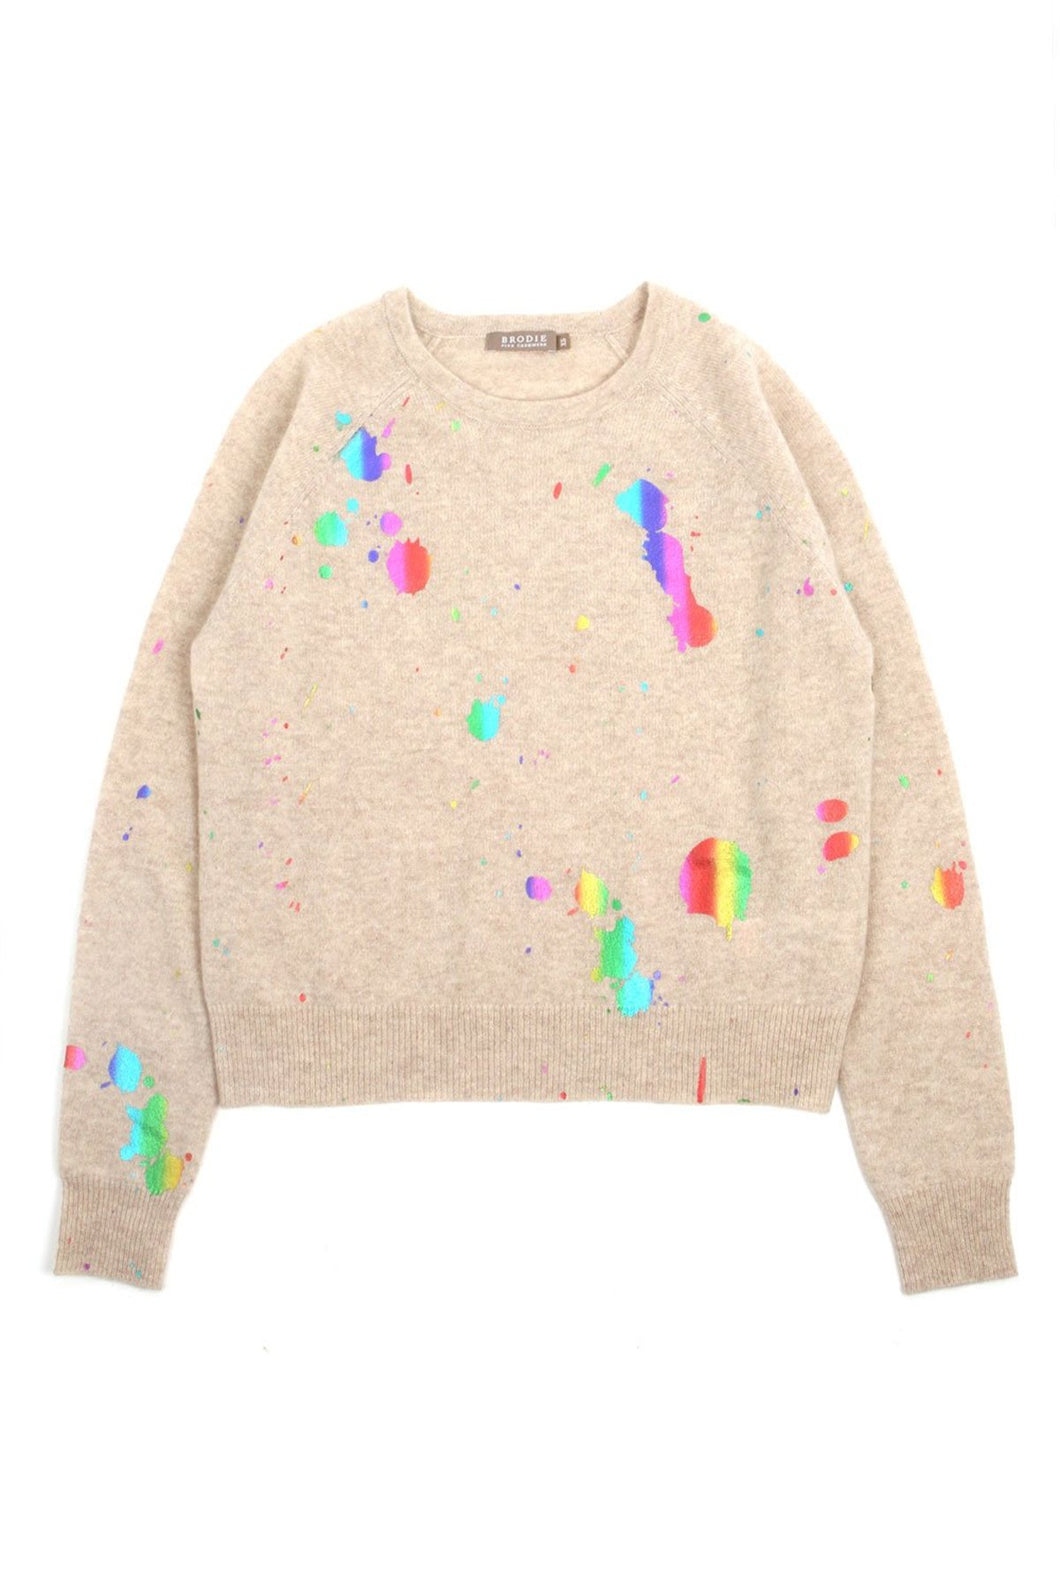 Brodie - Rainbow Foil Cashmere Sweater